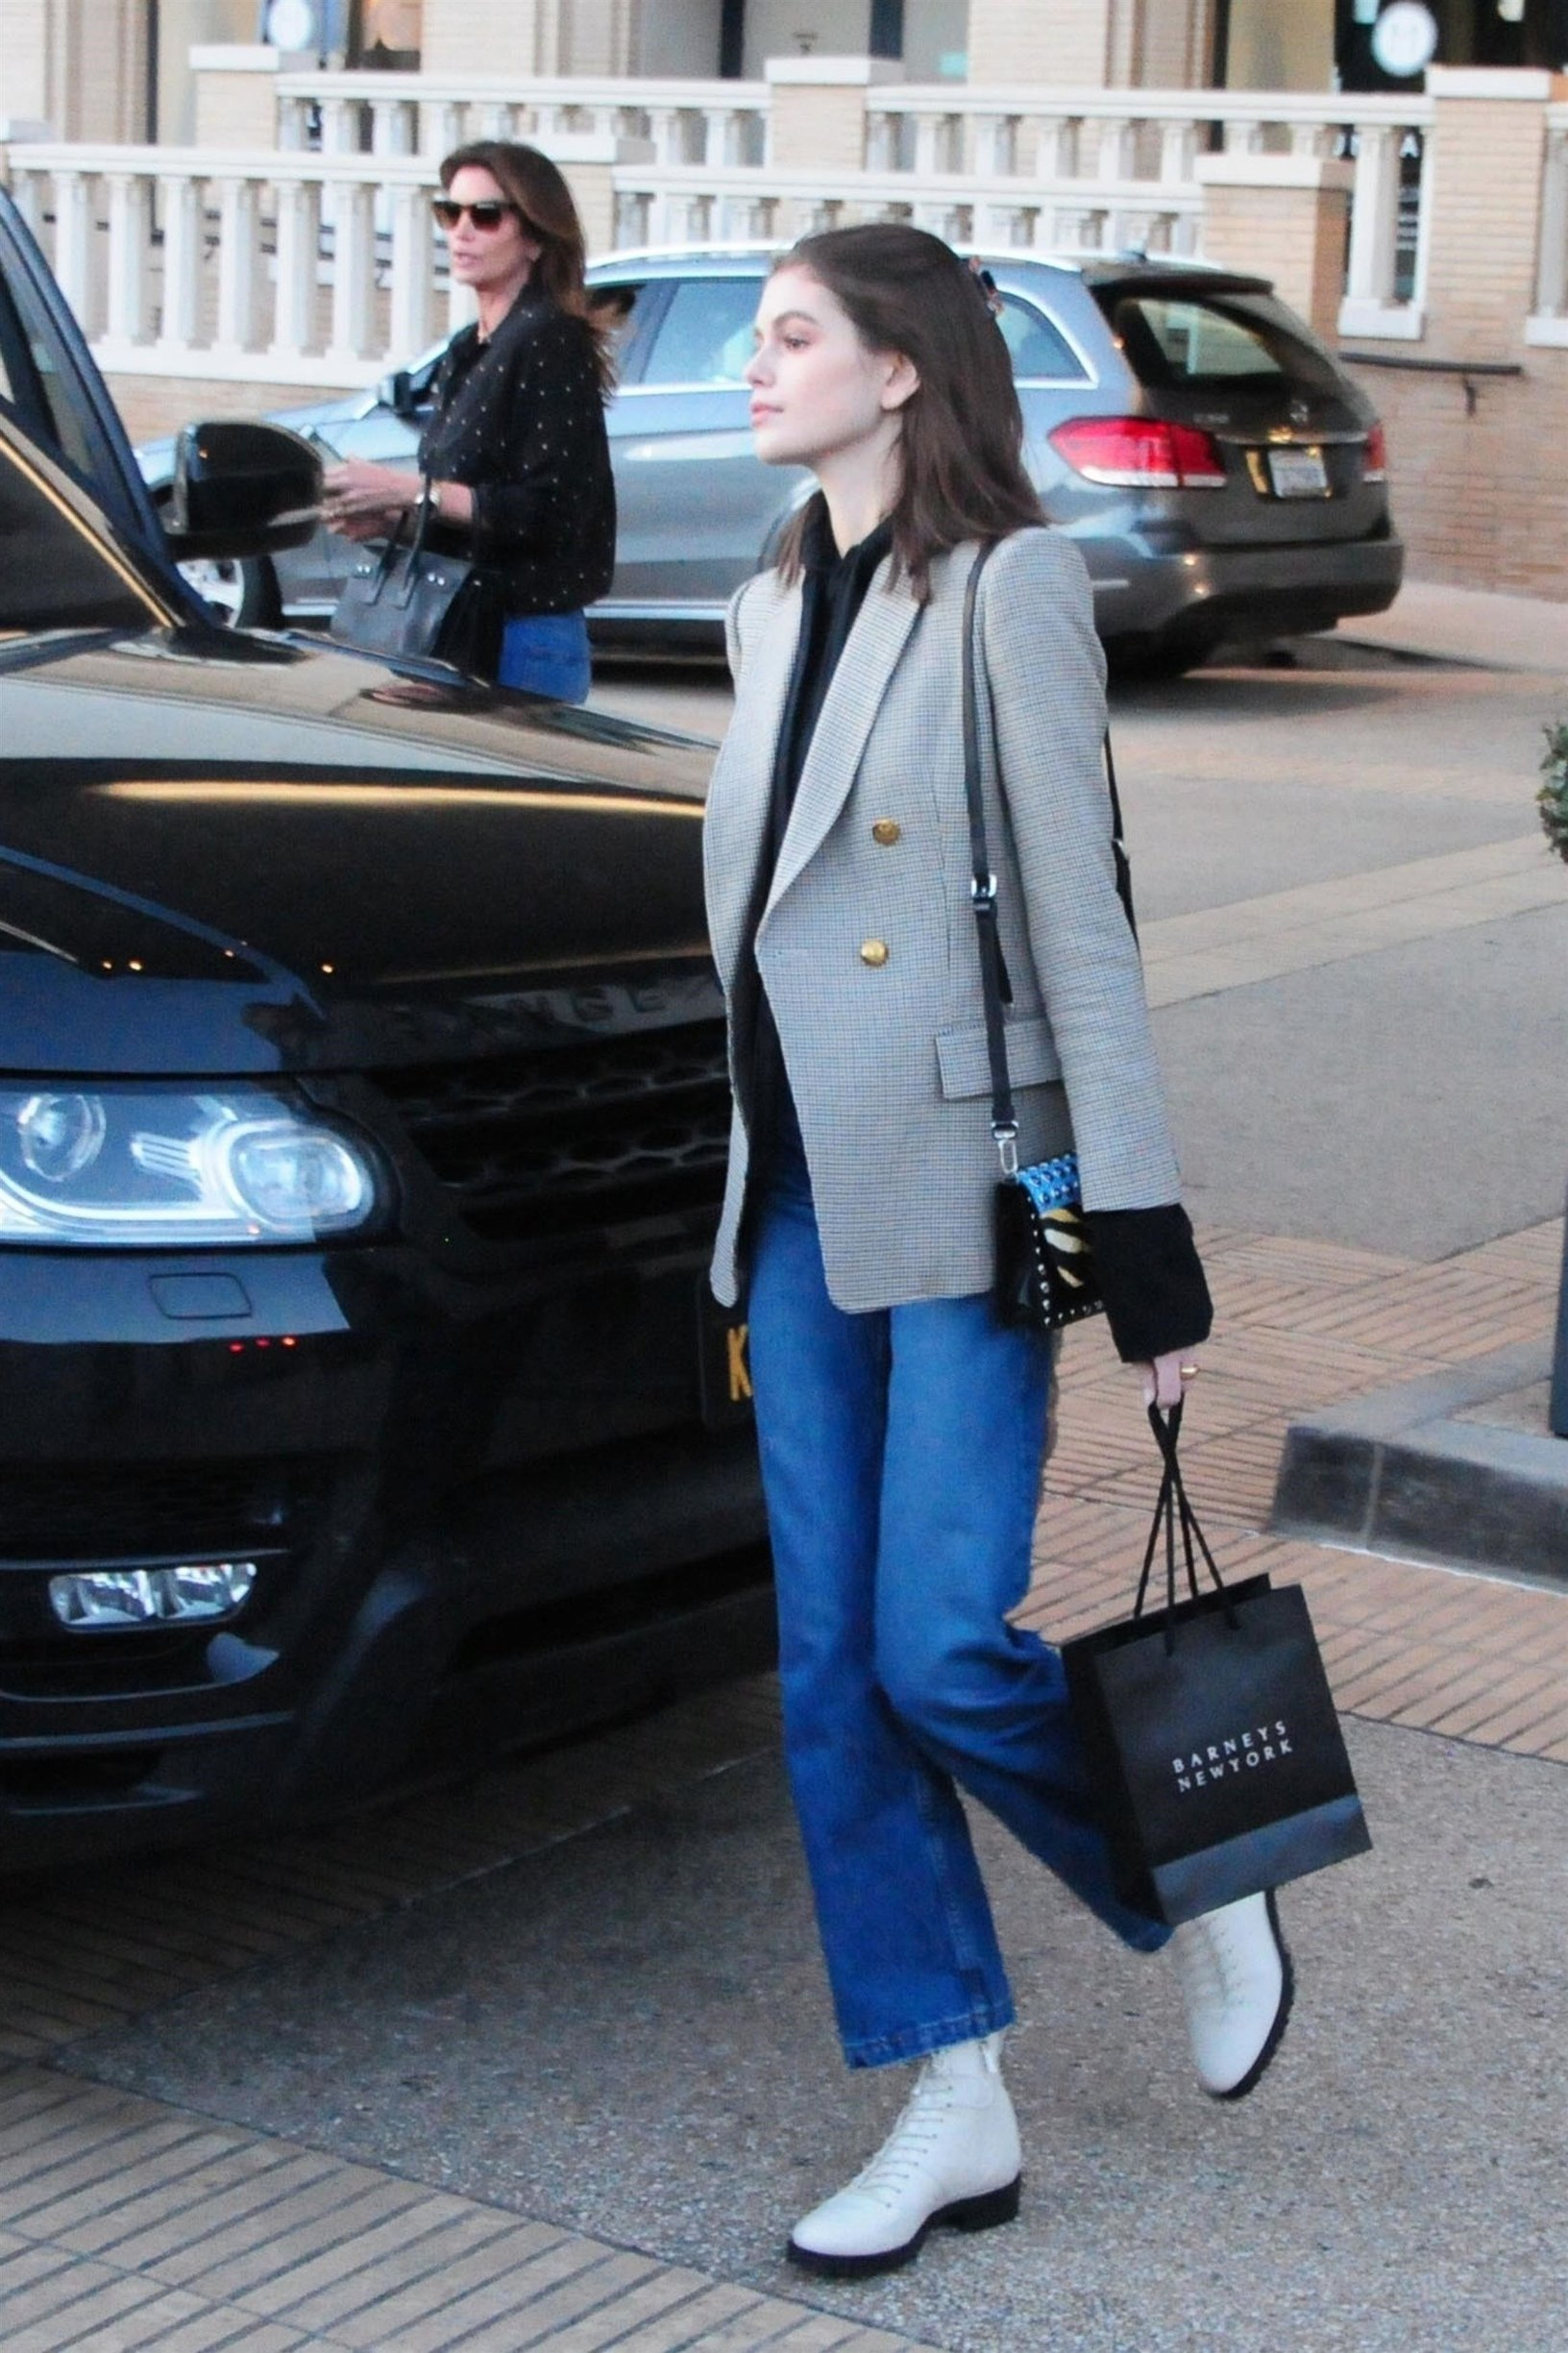 Beverly Hills, CA  - *EXCLUSIVE*  - Model Cindy Crawford and her daughter Kaia Gerber spend a girls day shopping at Barneys New York in Beverly Hills. Kaia was all smiles as the pair waited for their car at valet.  Pictured: Cindy Crawford, Kaia Gerber    *UK Clients - Pictures Containing Children Please Pixelate Face Prior To Publication*, Image: 412263290, License: Rights-managed, Restrictions: , Model Release: no, Credit line: Profimedia, Backgrid USA